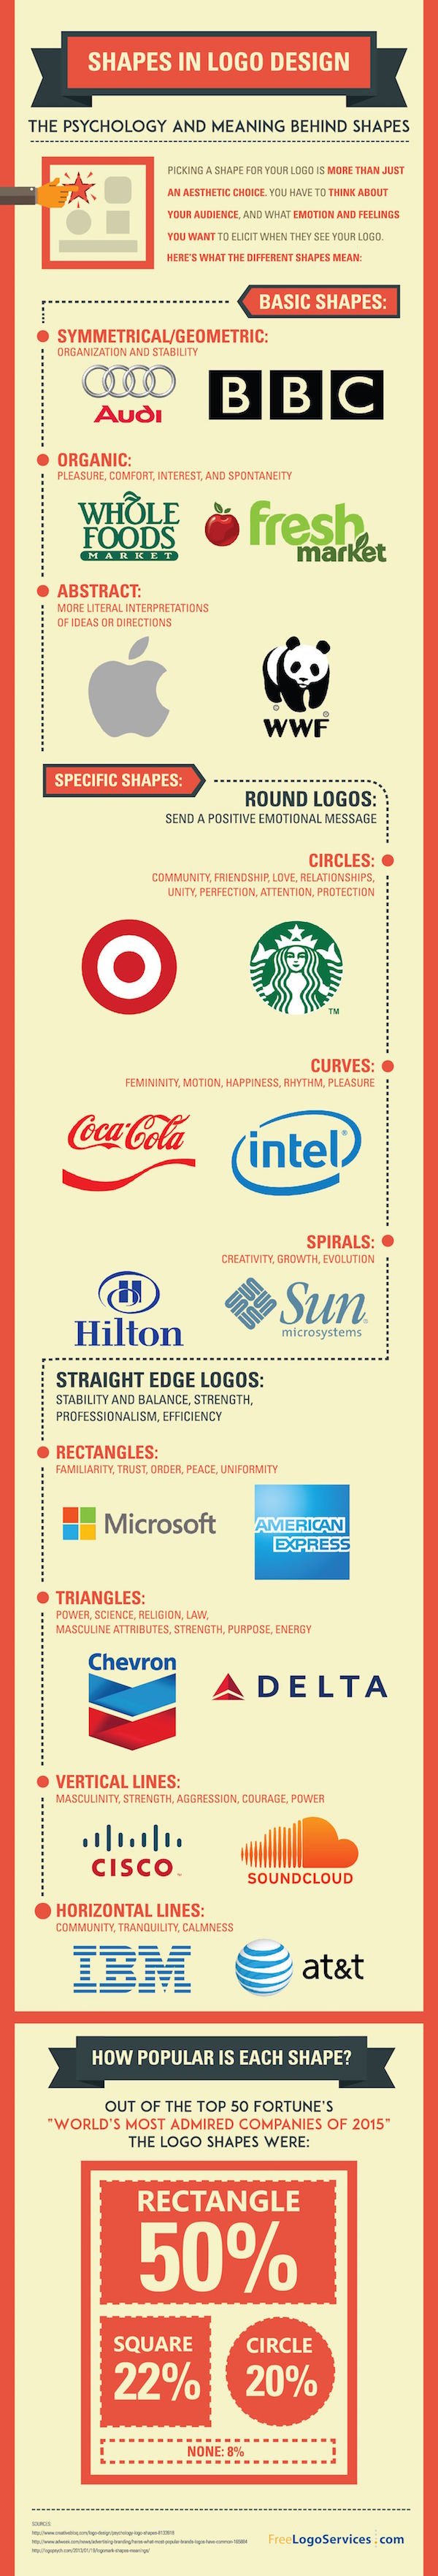 The Psychological Meaning Of Shapes In Logo Design Infographic